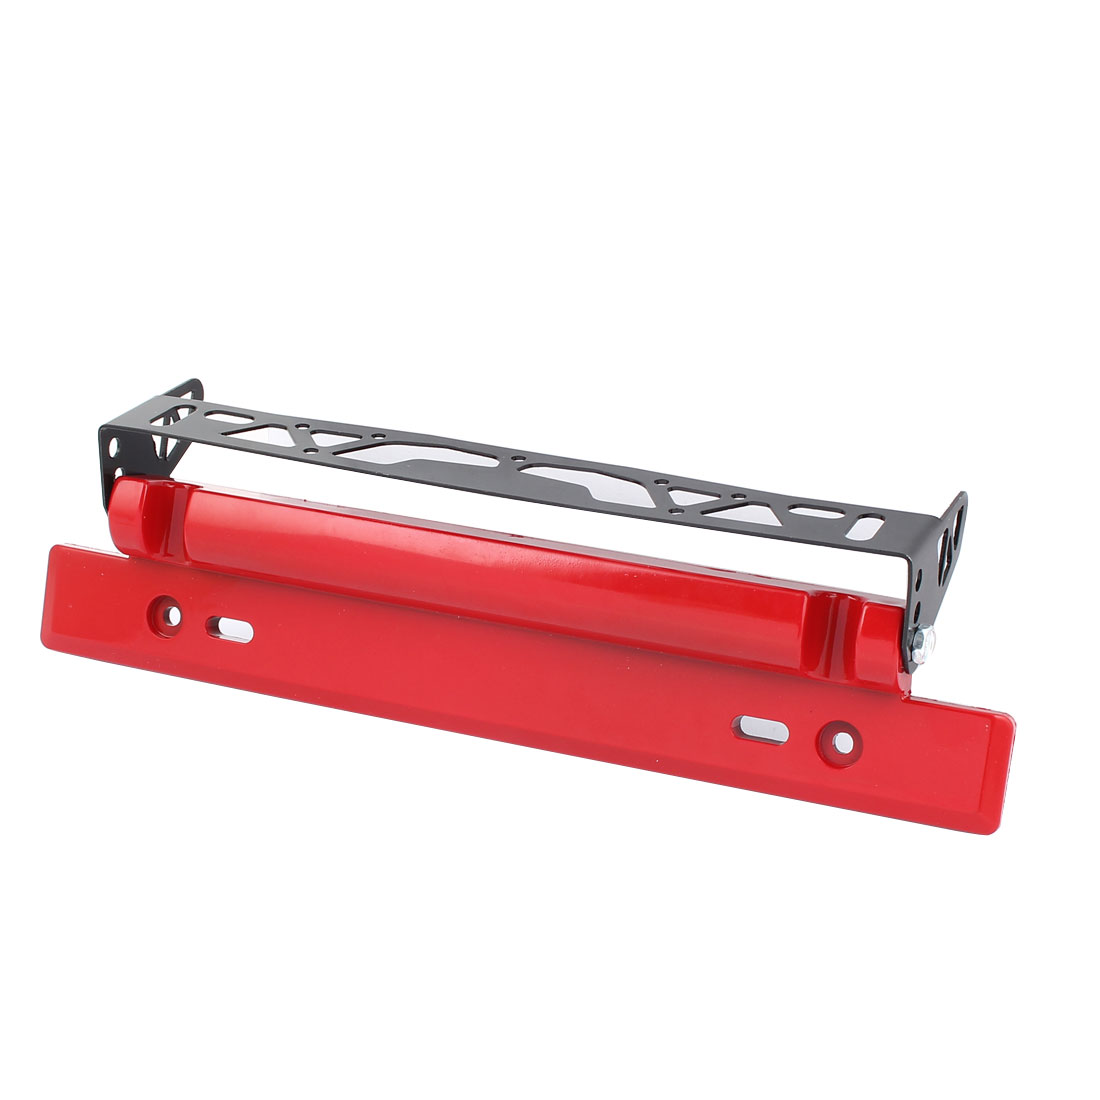 Black Red Plastic Adjustable Number License Plate Bracket Frame Holder for Auto Car Vehicle